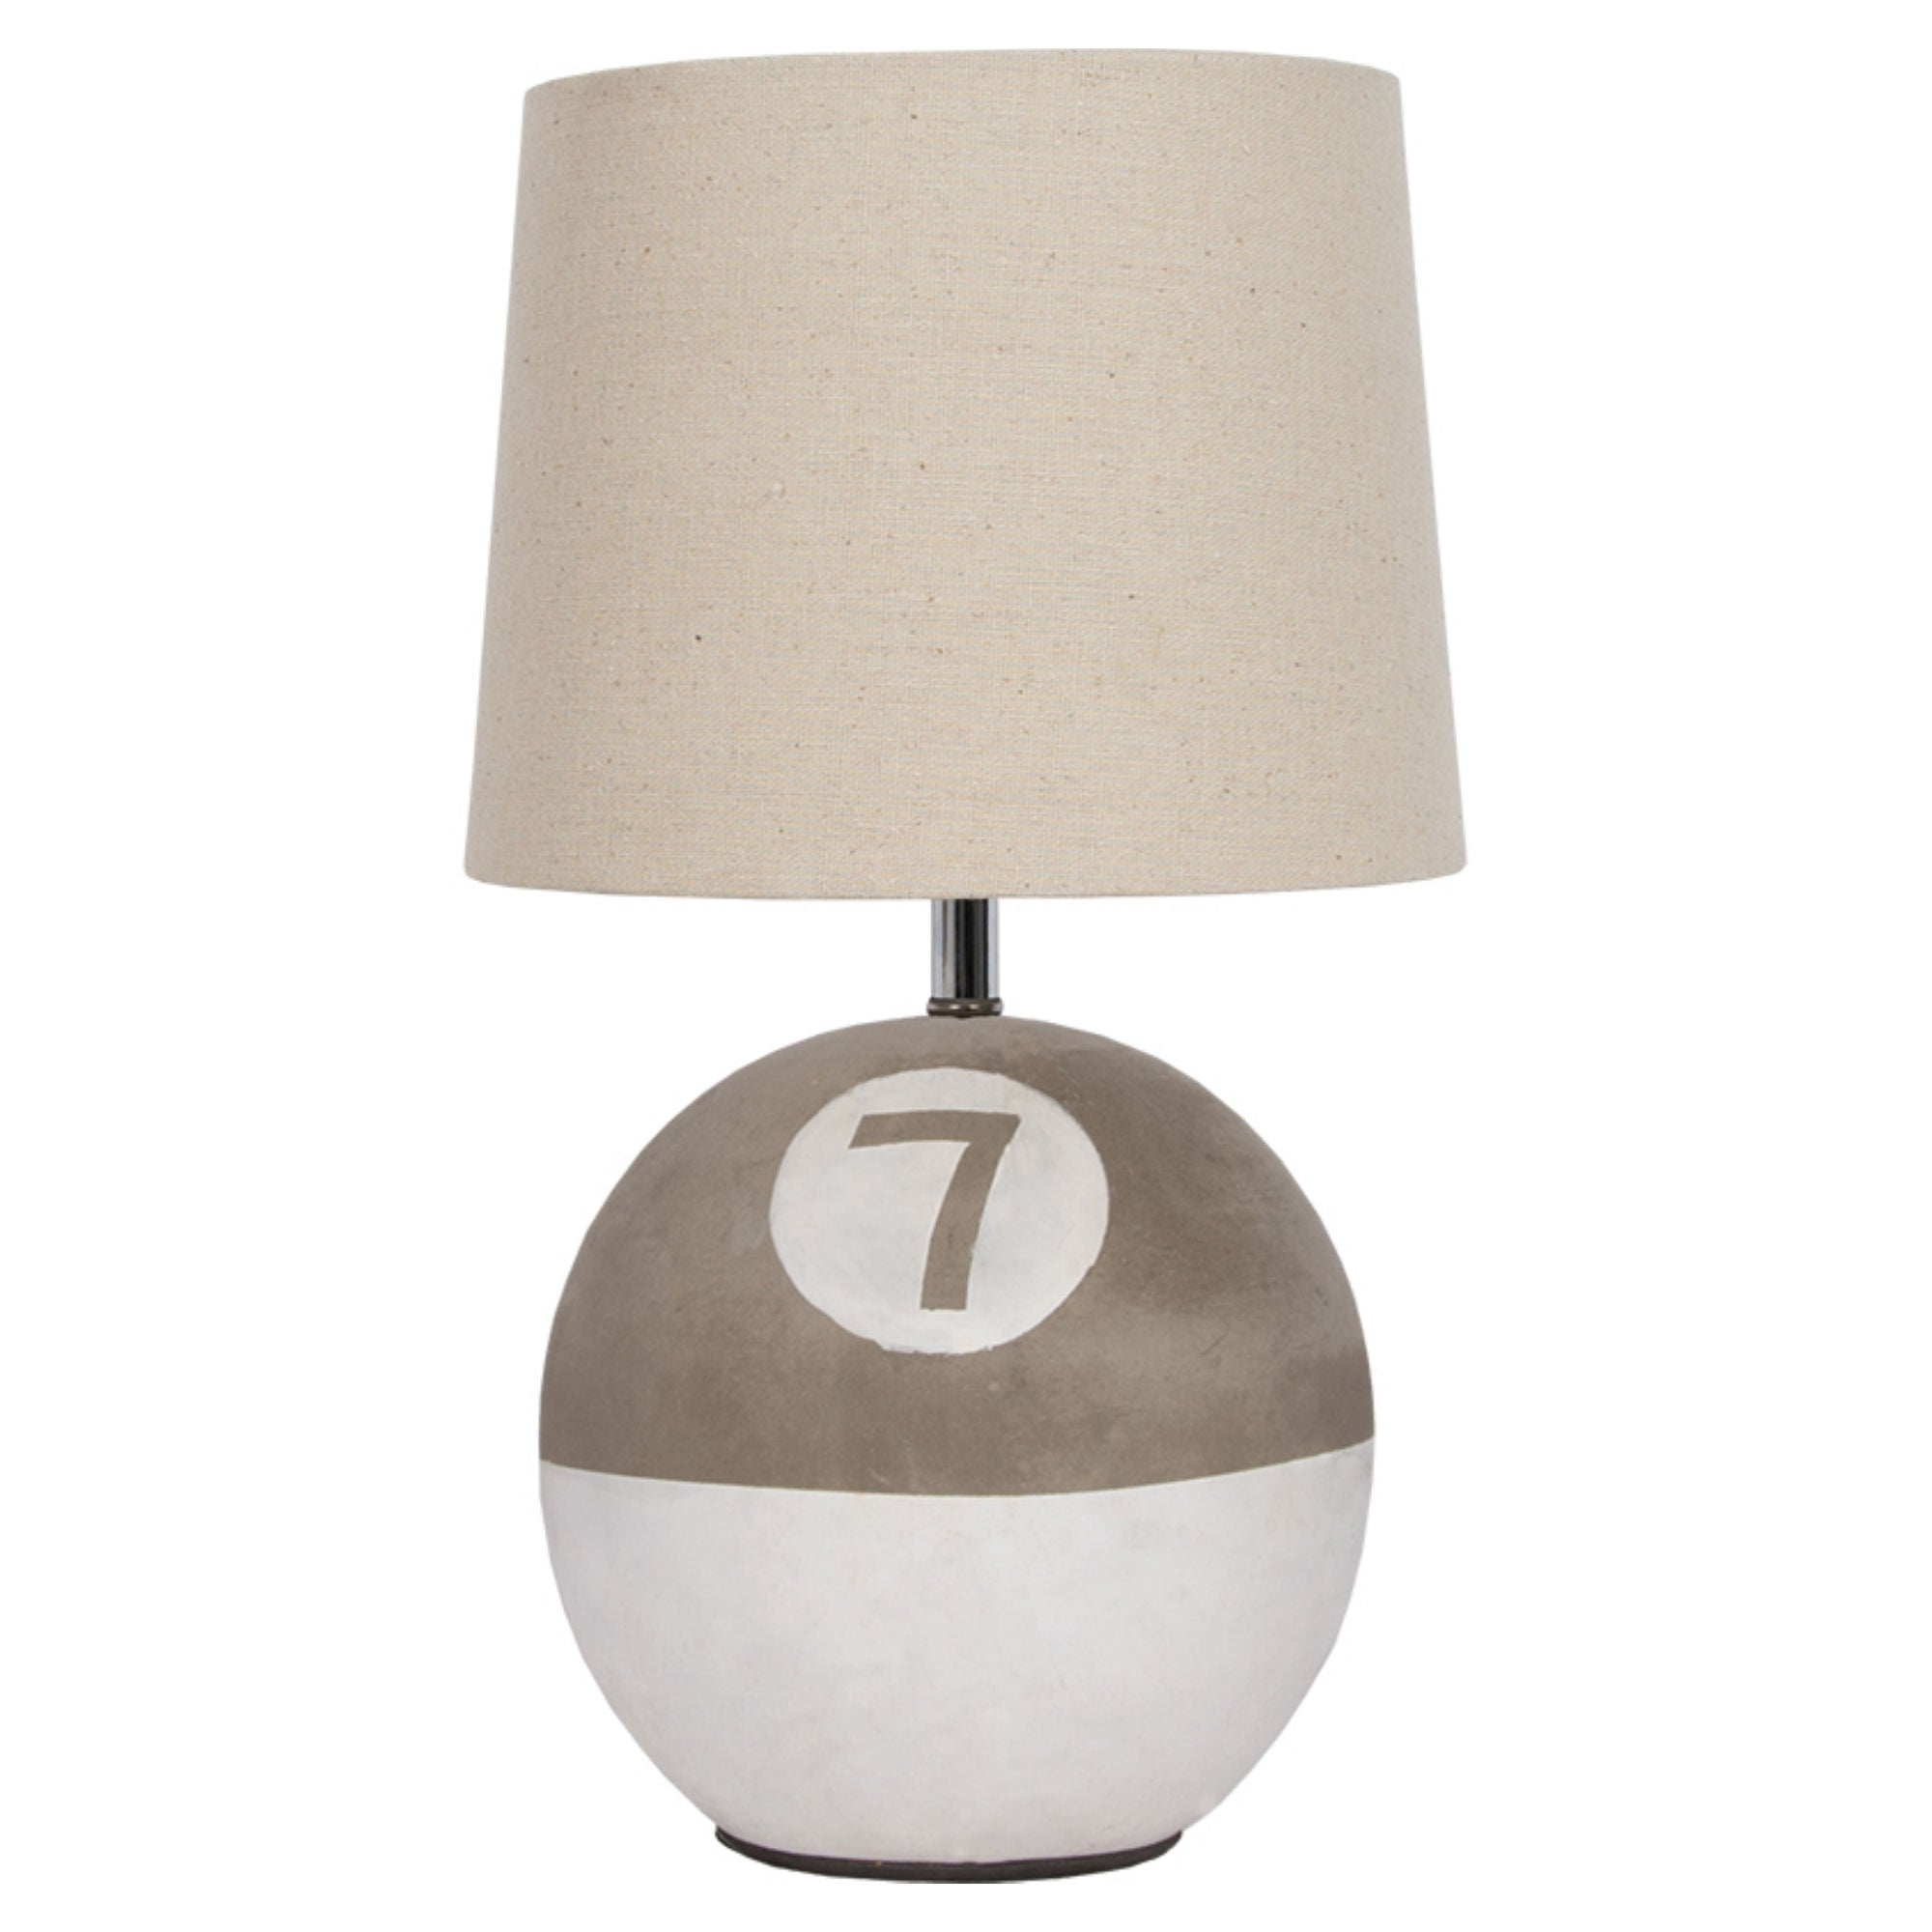 Batela Giftware-Lamp-Buoy Table Lamp with Cement base